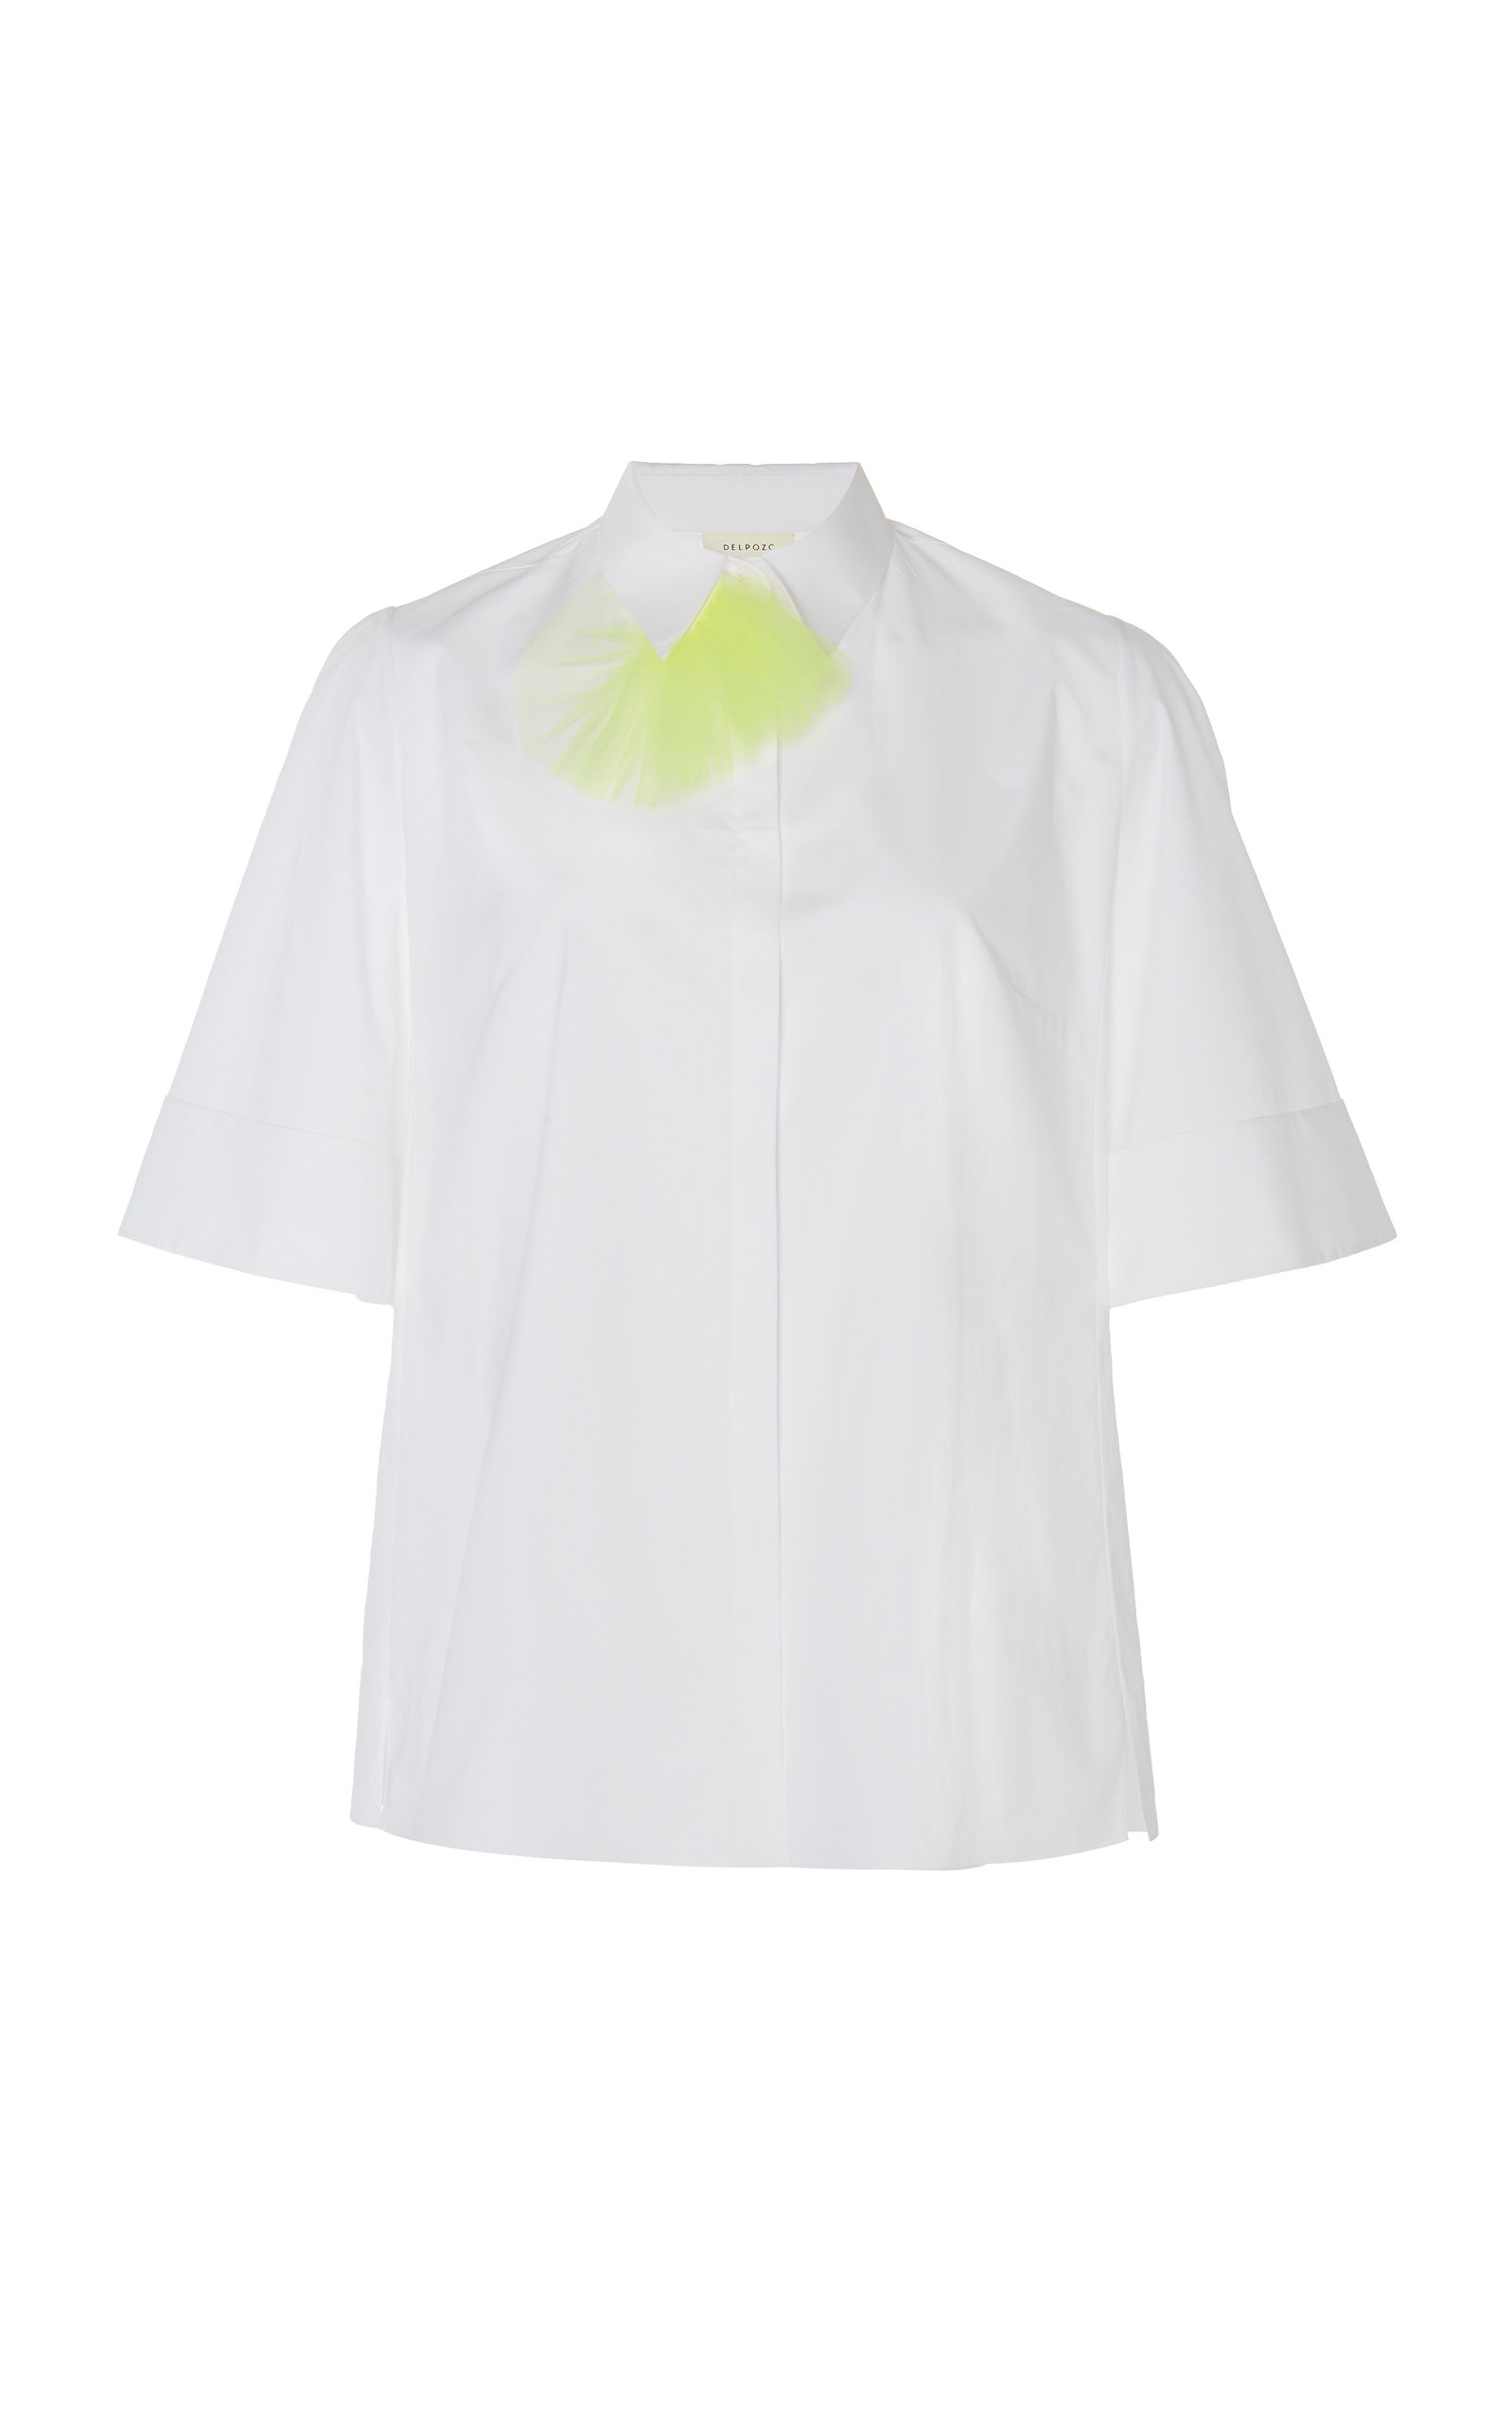 Wide Short Sleeve Shirt Delpozo View Manchester Get To Buy For Sale fhSolGCOYm